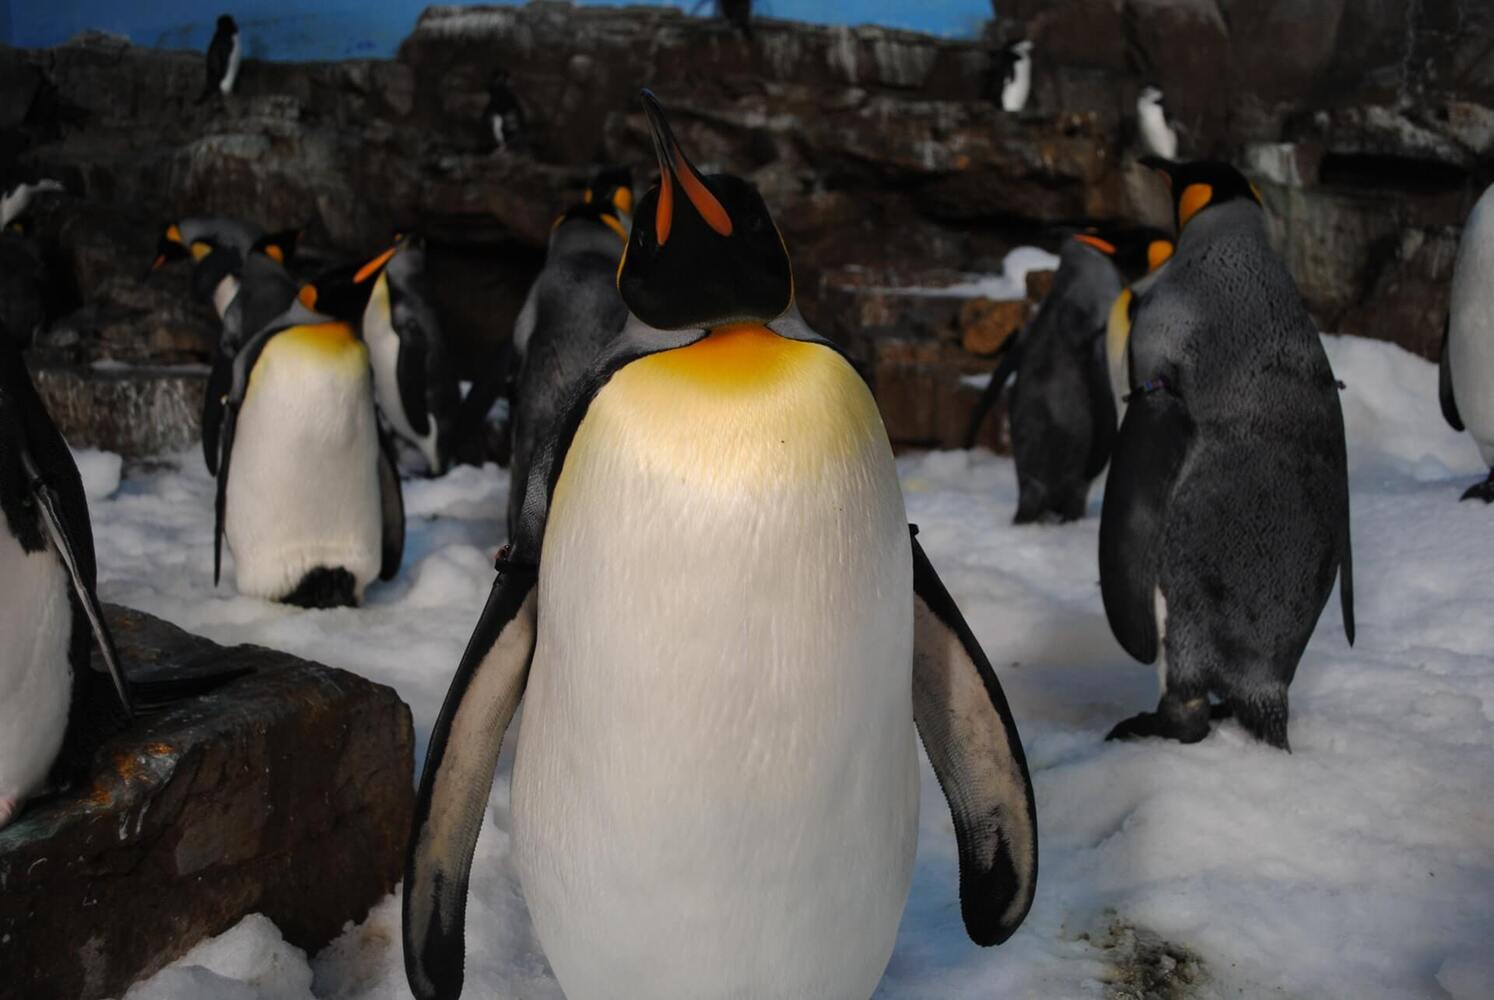 Penguin 3.1 released on November 27th 2014!